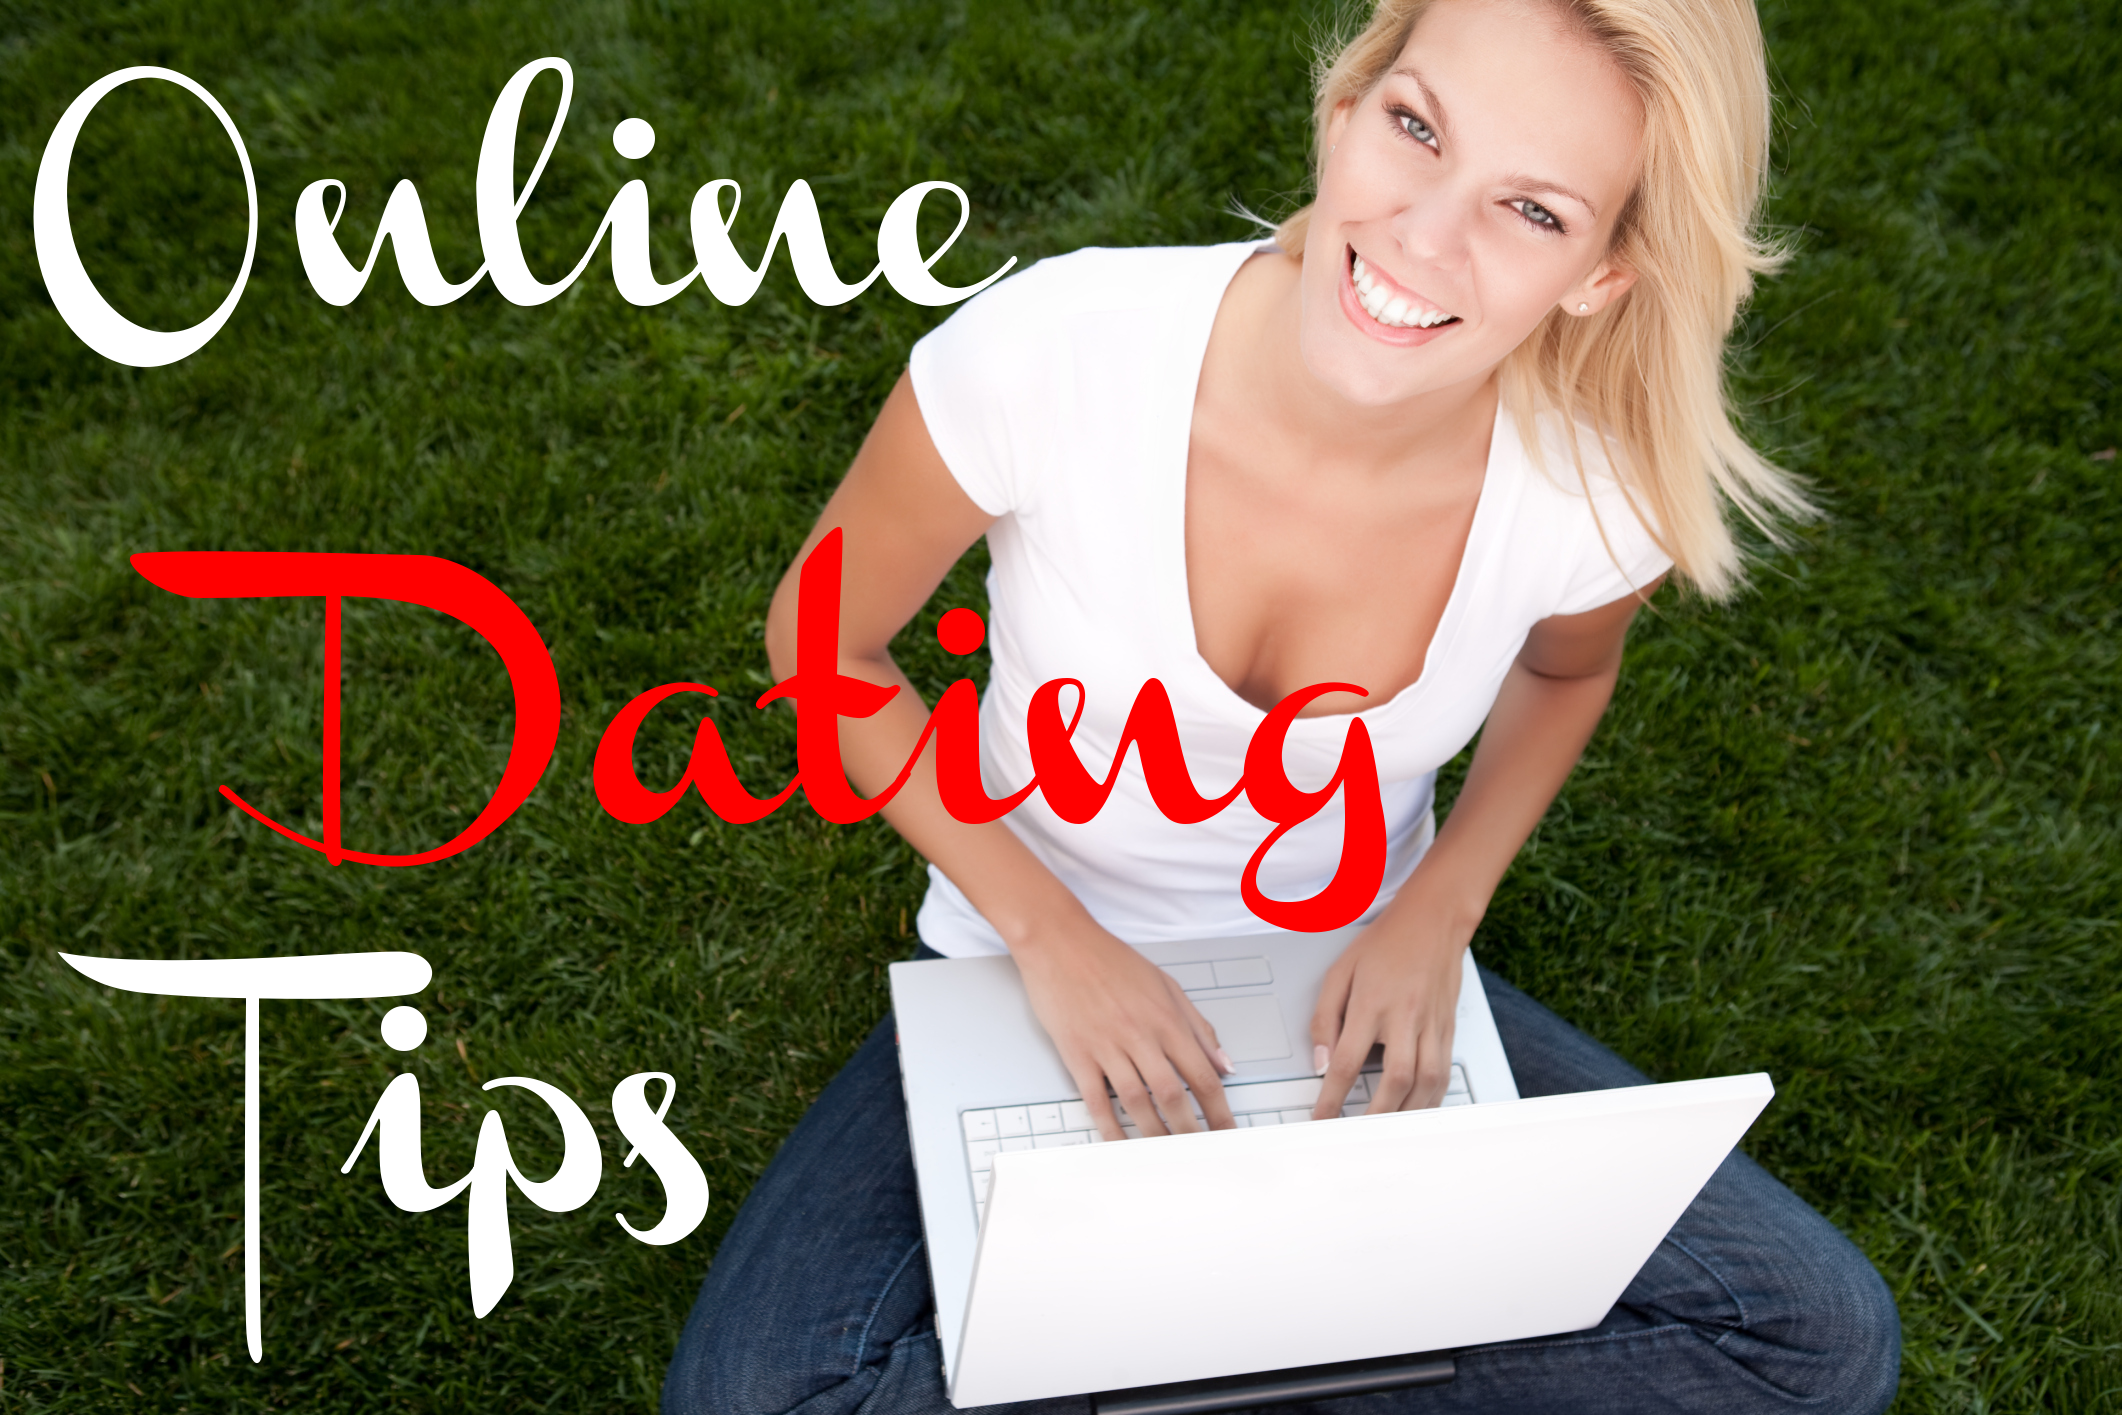 Online dating protocol in Melbourne